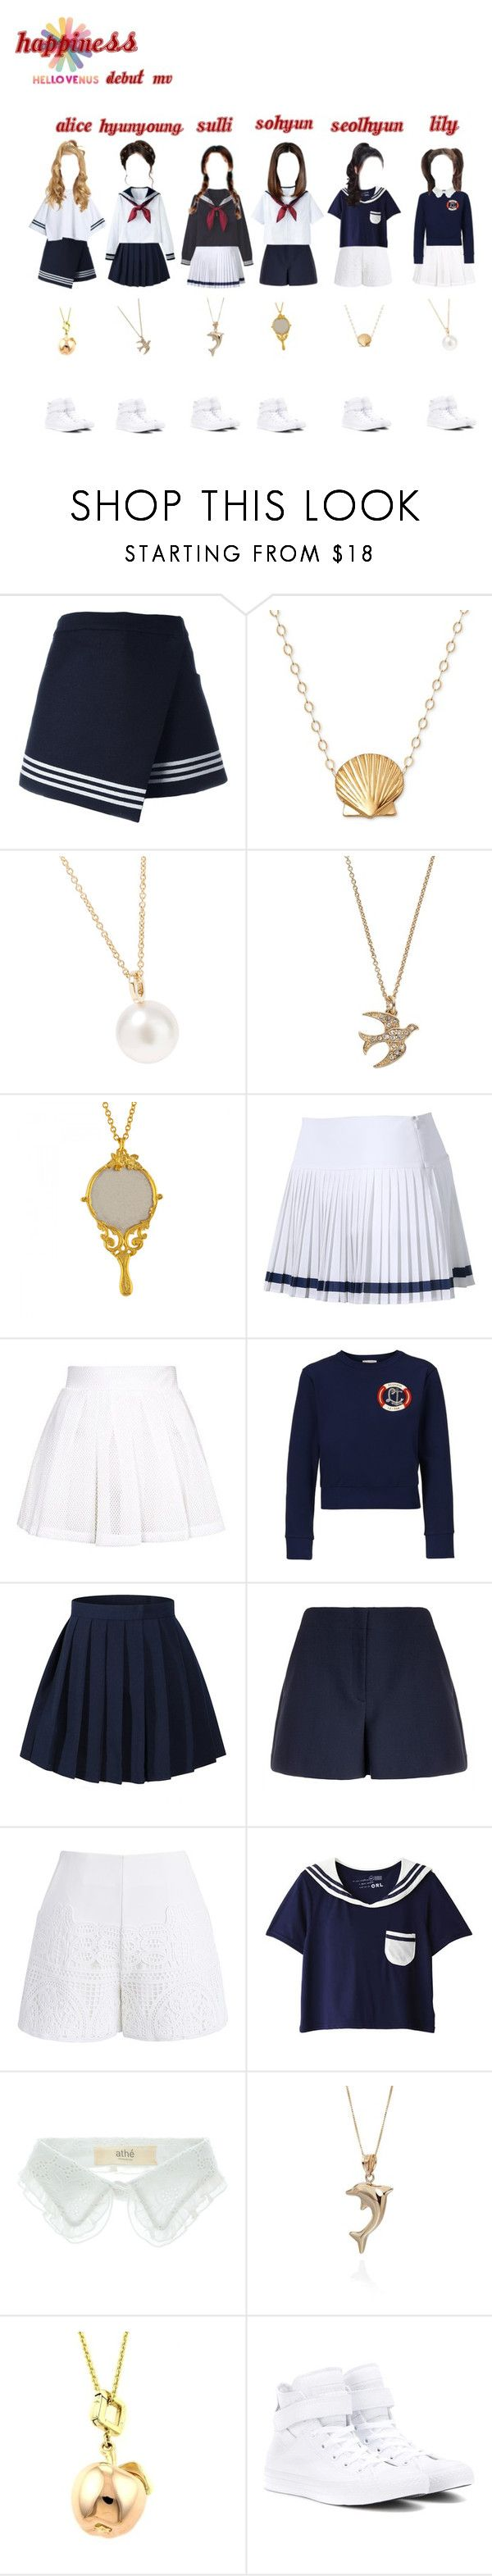 """""""Hello Venus! Happiness Debut MV 2013"""" by kpopgroups101 ❤ liked on Polyvore featuring Sea, New York, Sophie Bille Brahe, Alex Monroe, Lacoste, Topshop, Olympia Le-Tan, Theory, Chicwish, Vanessa Bruno Athé and Belk & Co."""